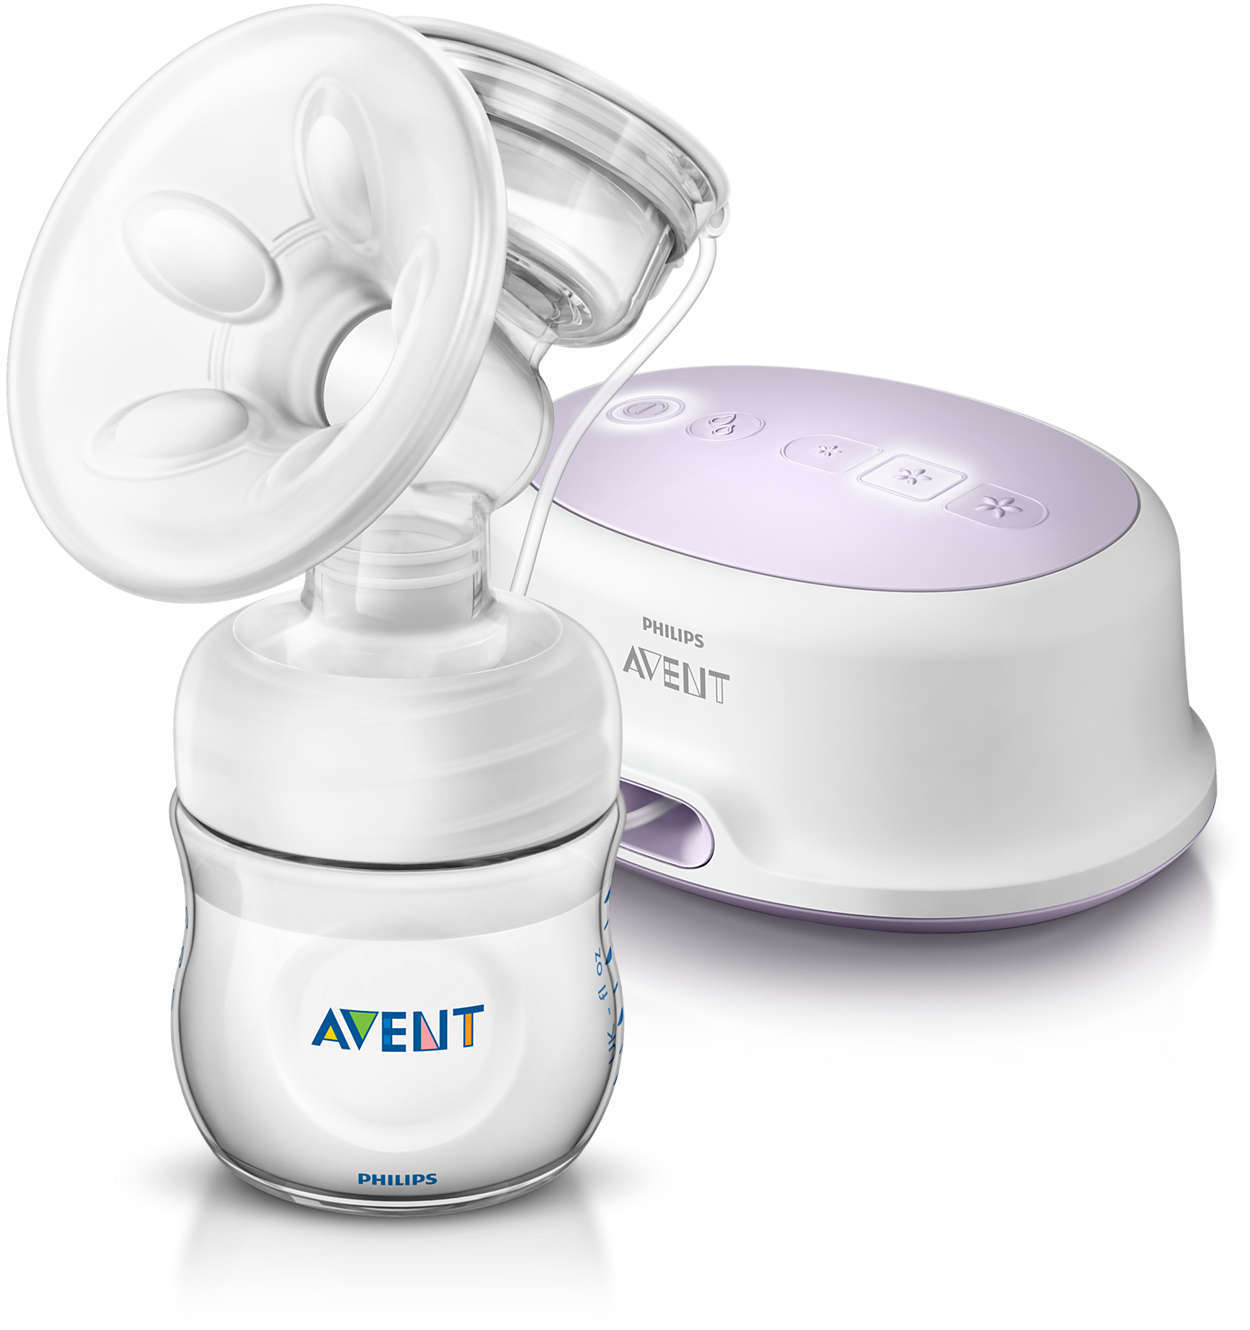 Philips Avent Comfort Single Electric Breast Pump image